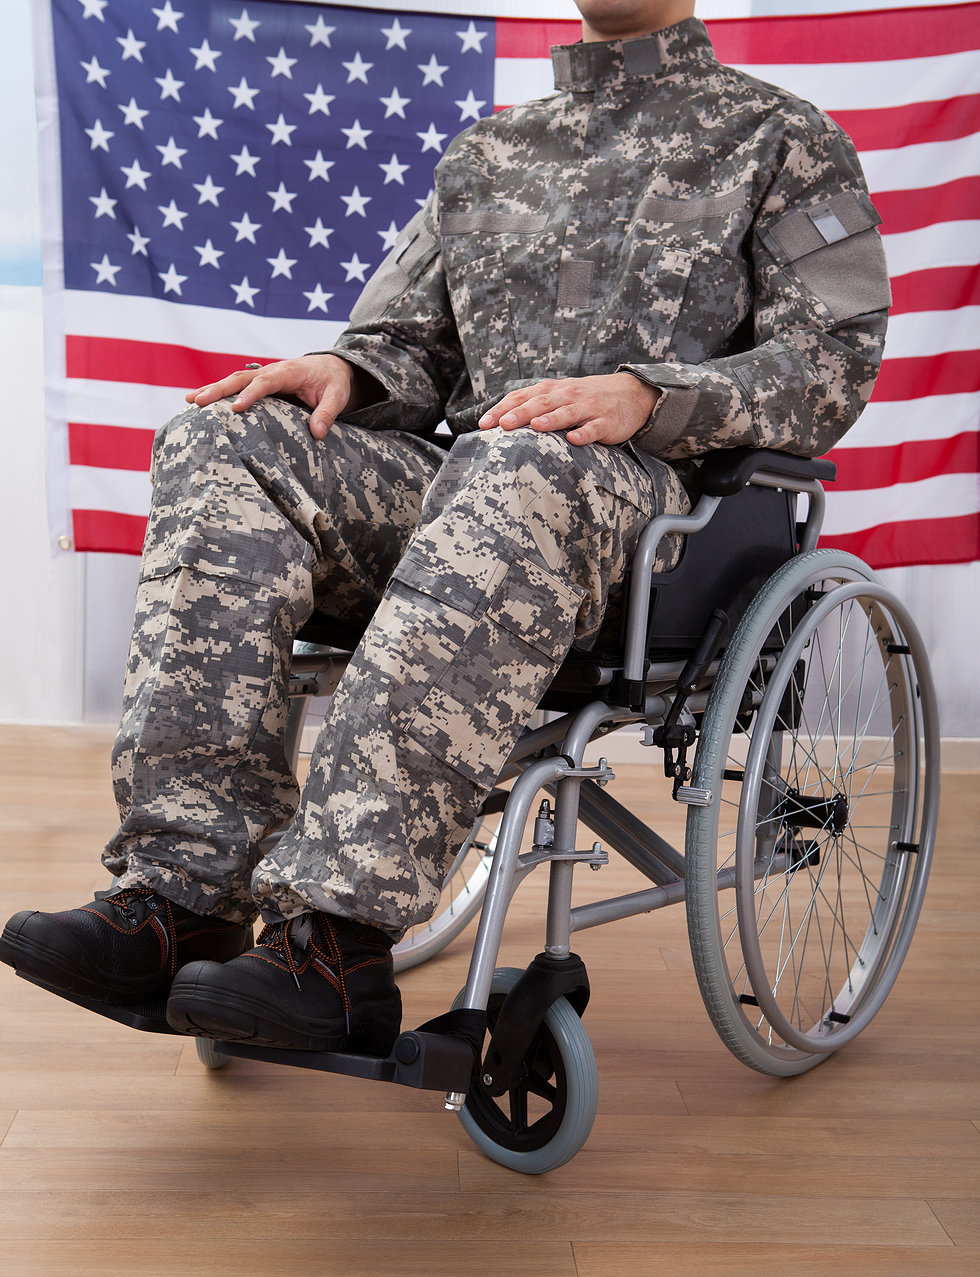 Financial Assistance for Veterans in Texas